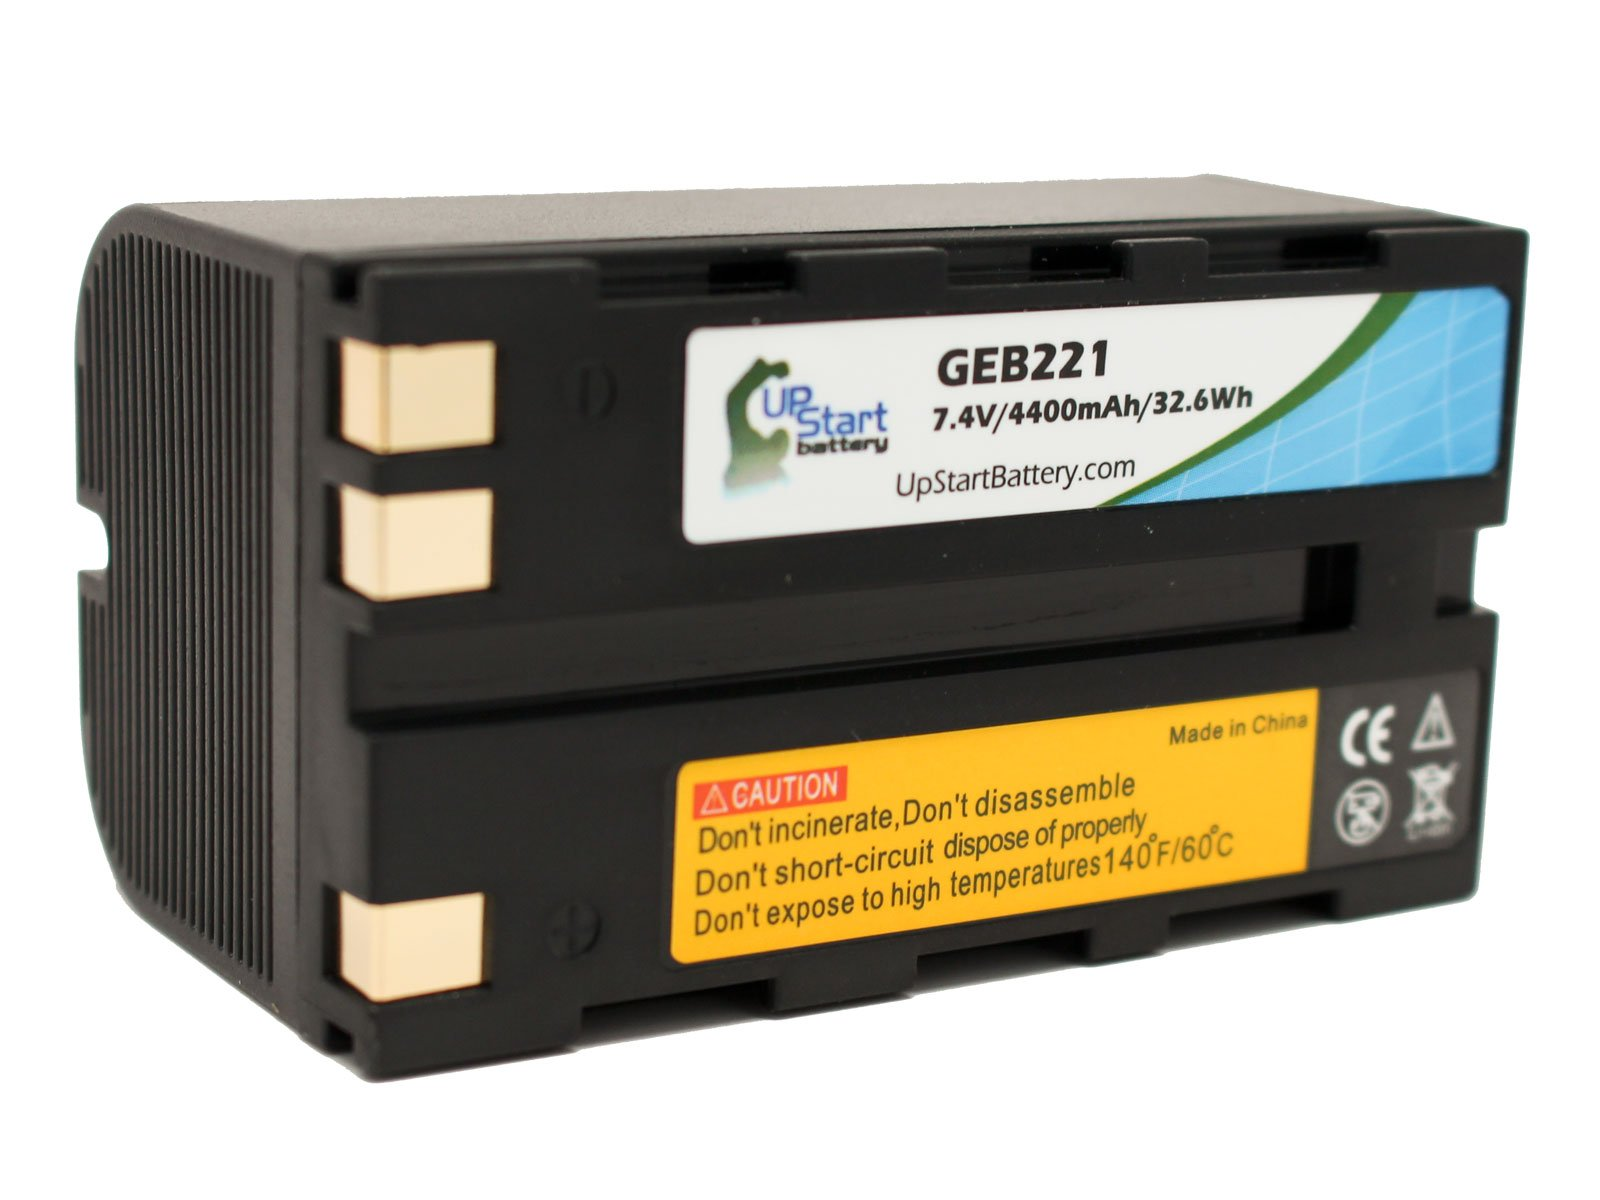 Leica GEB221 Battery Replacement (4400mAh, 7.4V, Lithium-Ion) - Compatible with Leica TPS1200, TC1200, ATX1230, GEB221, GPS1200, GPS900, GRX1200, GS20, GX1200, PIPER 100, PIPER 200, RX1200, RX900